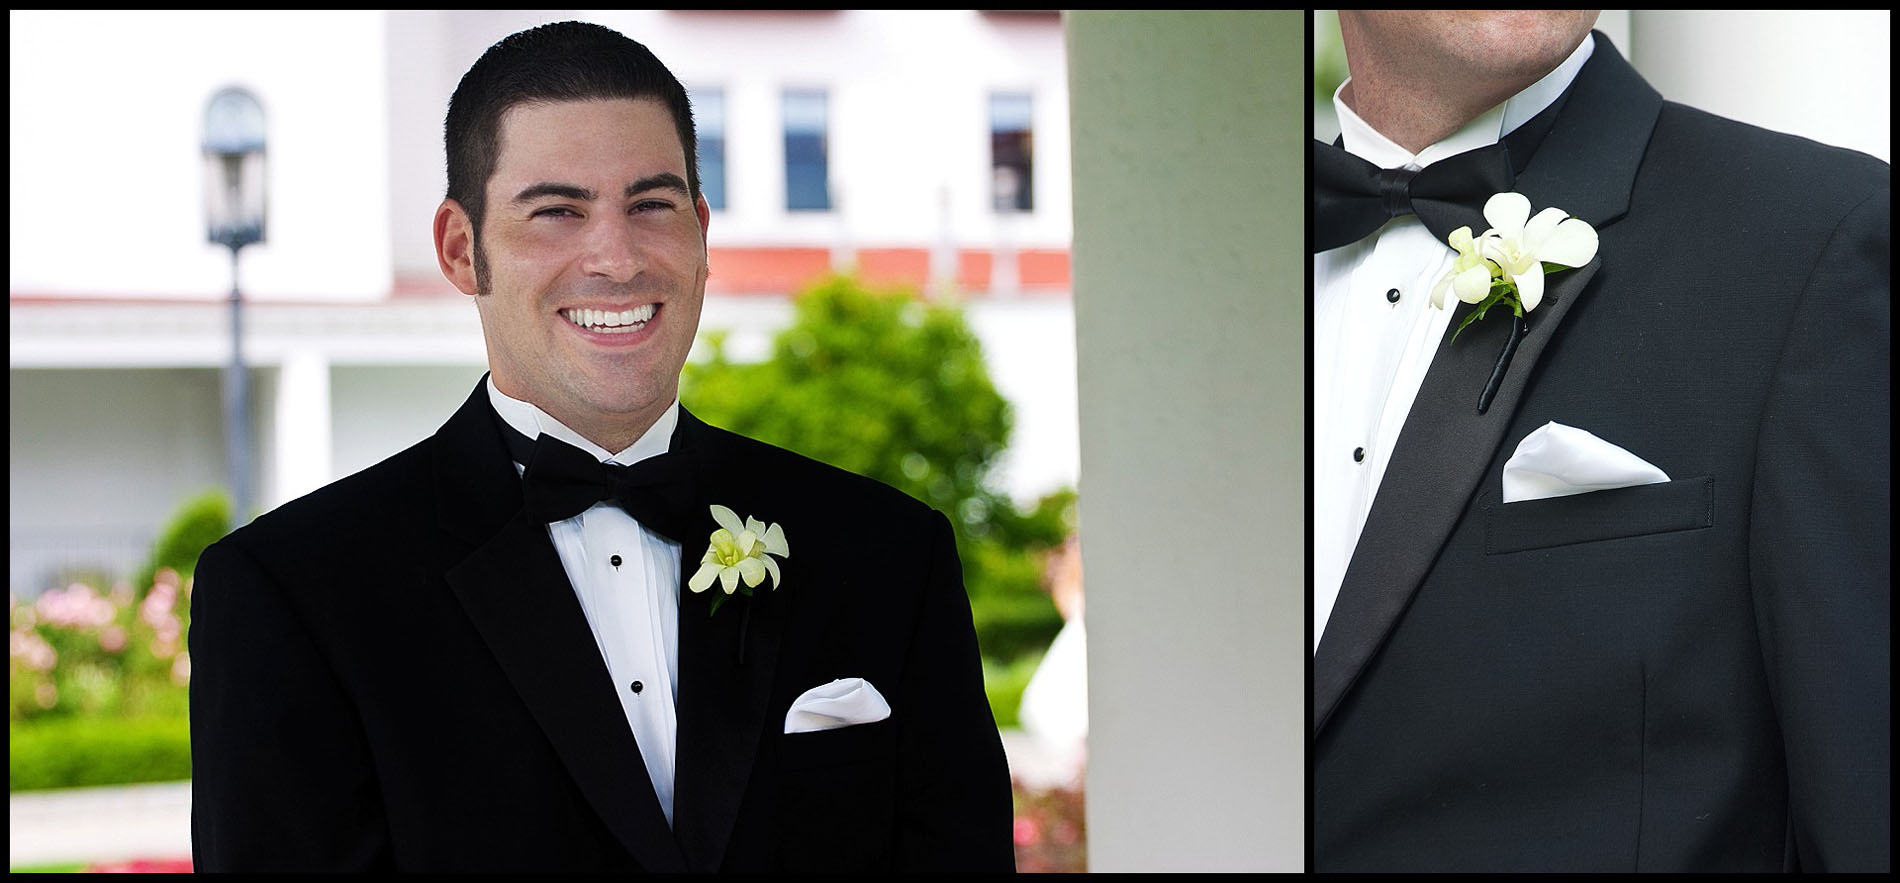 Favorite Wedding Pictures from Wentworth - groom photos